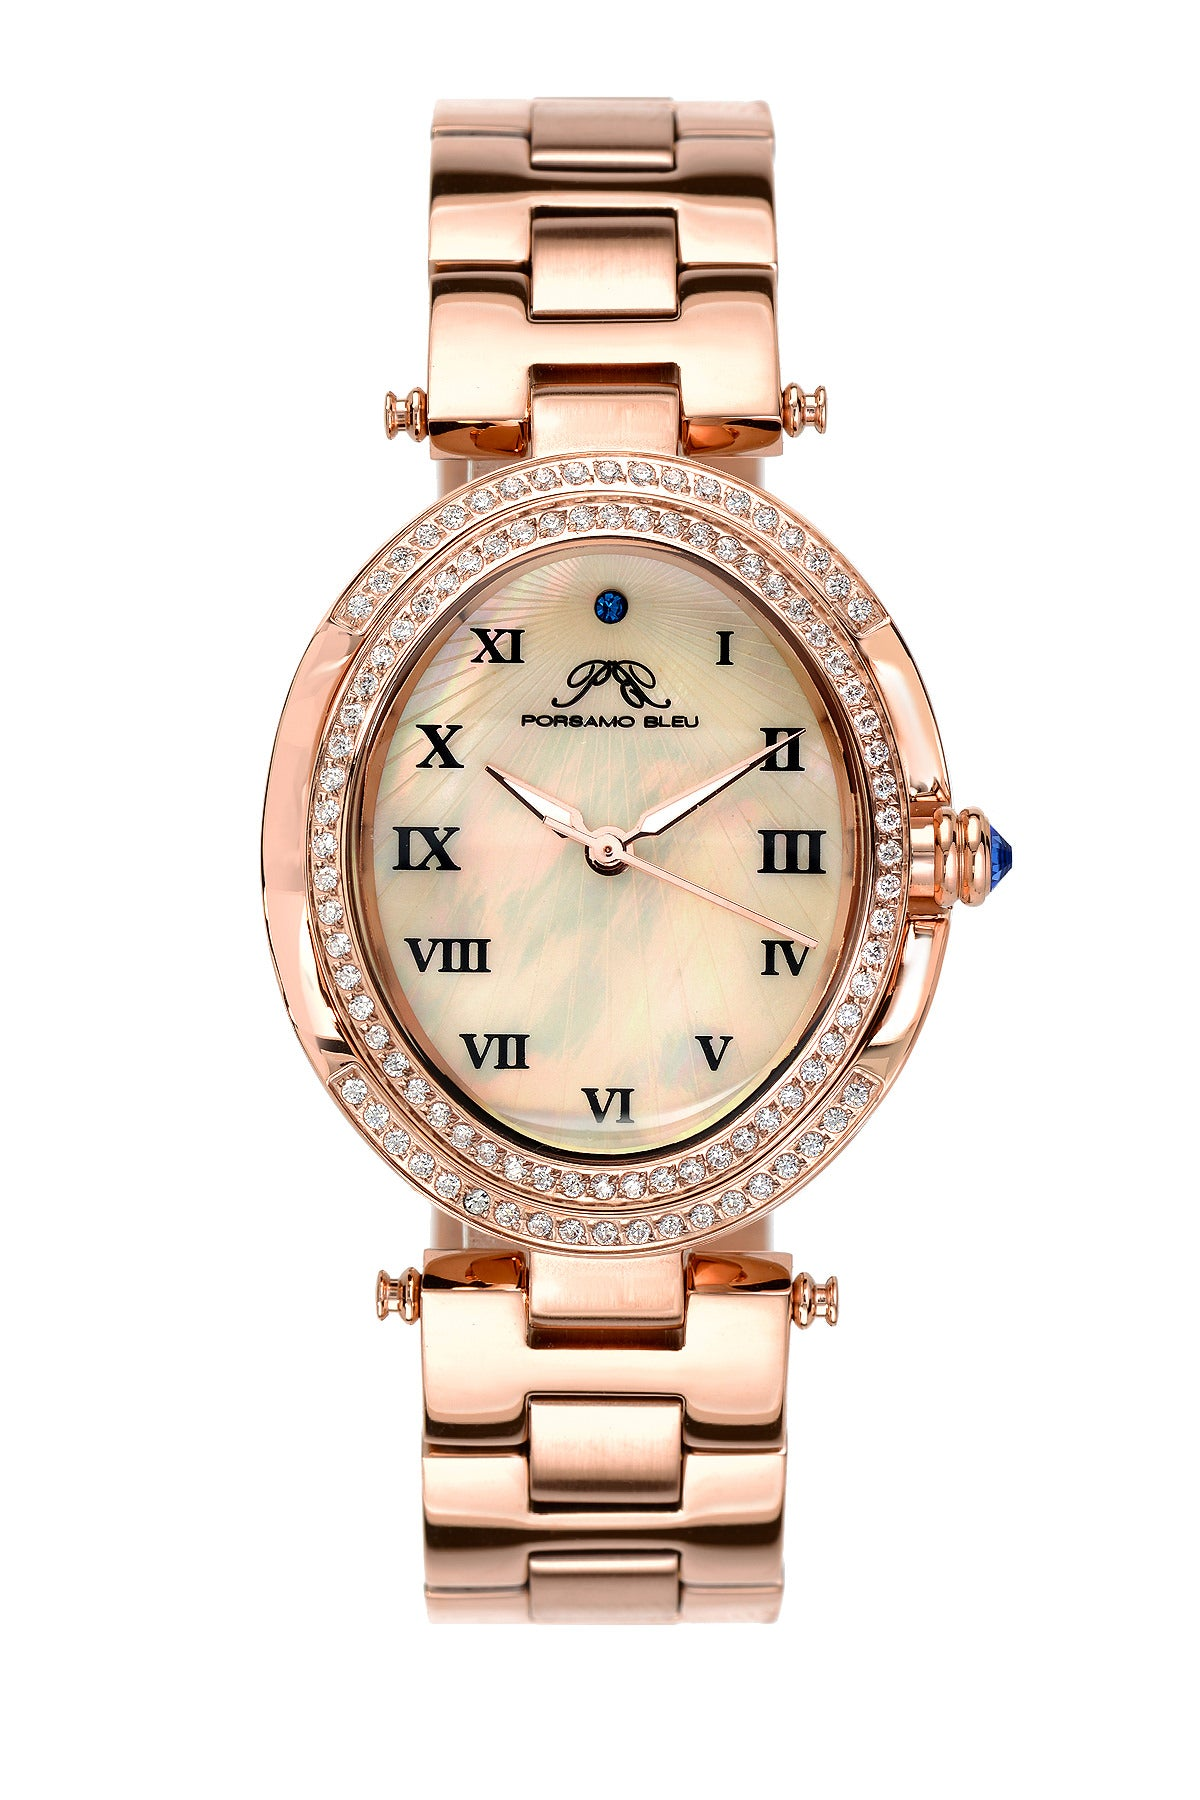 Porsamo Bleu South Sea Oval Crystal luxury women's stainless steel watch, rose 106ASSO